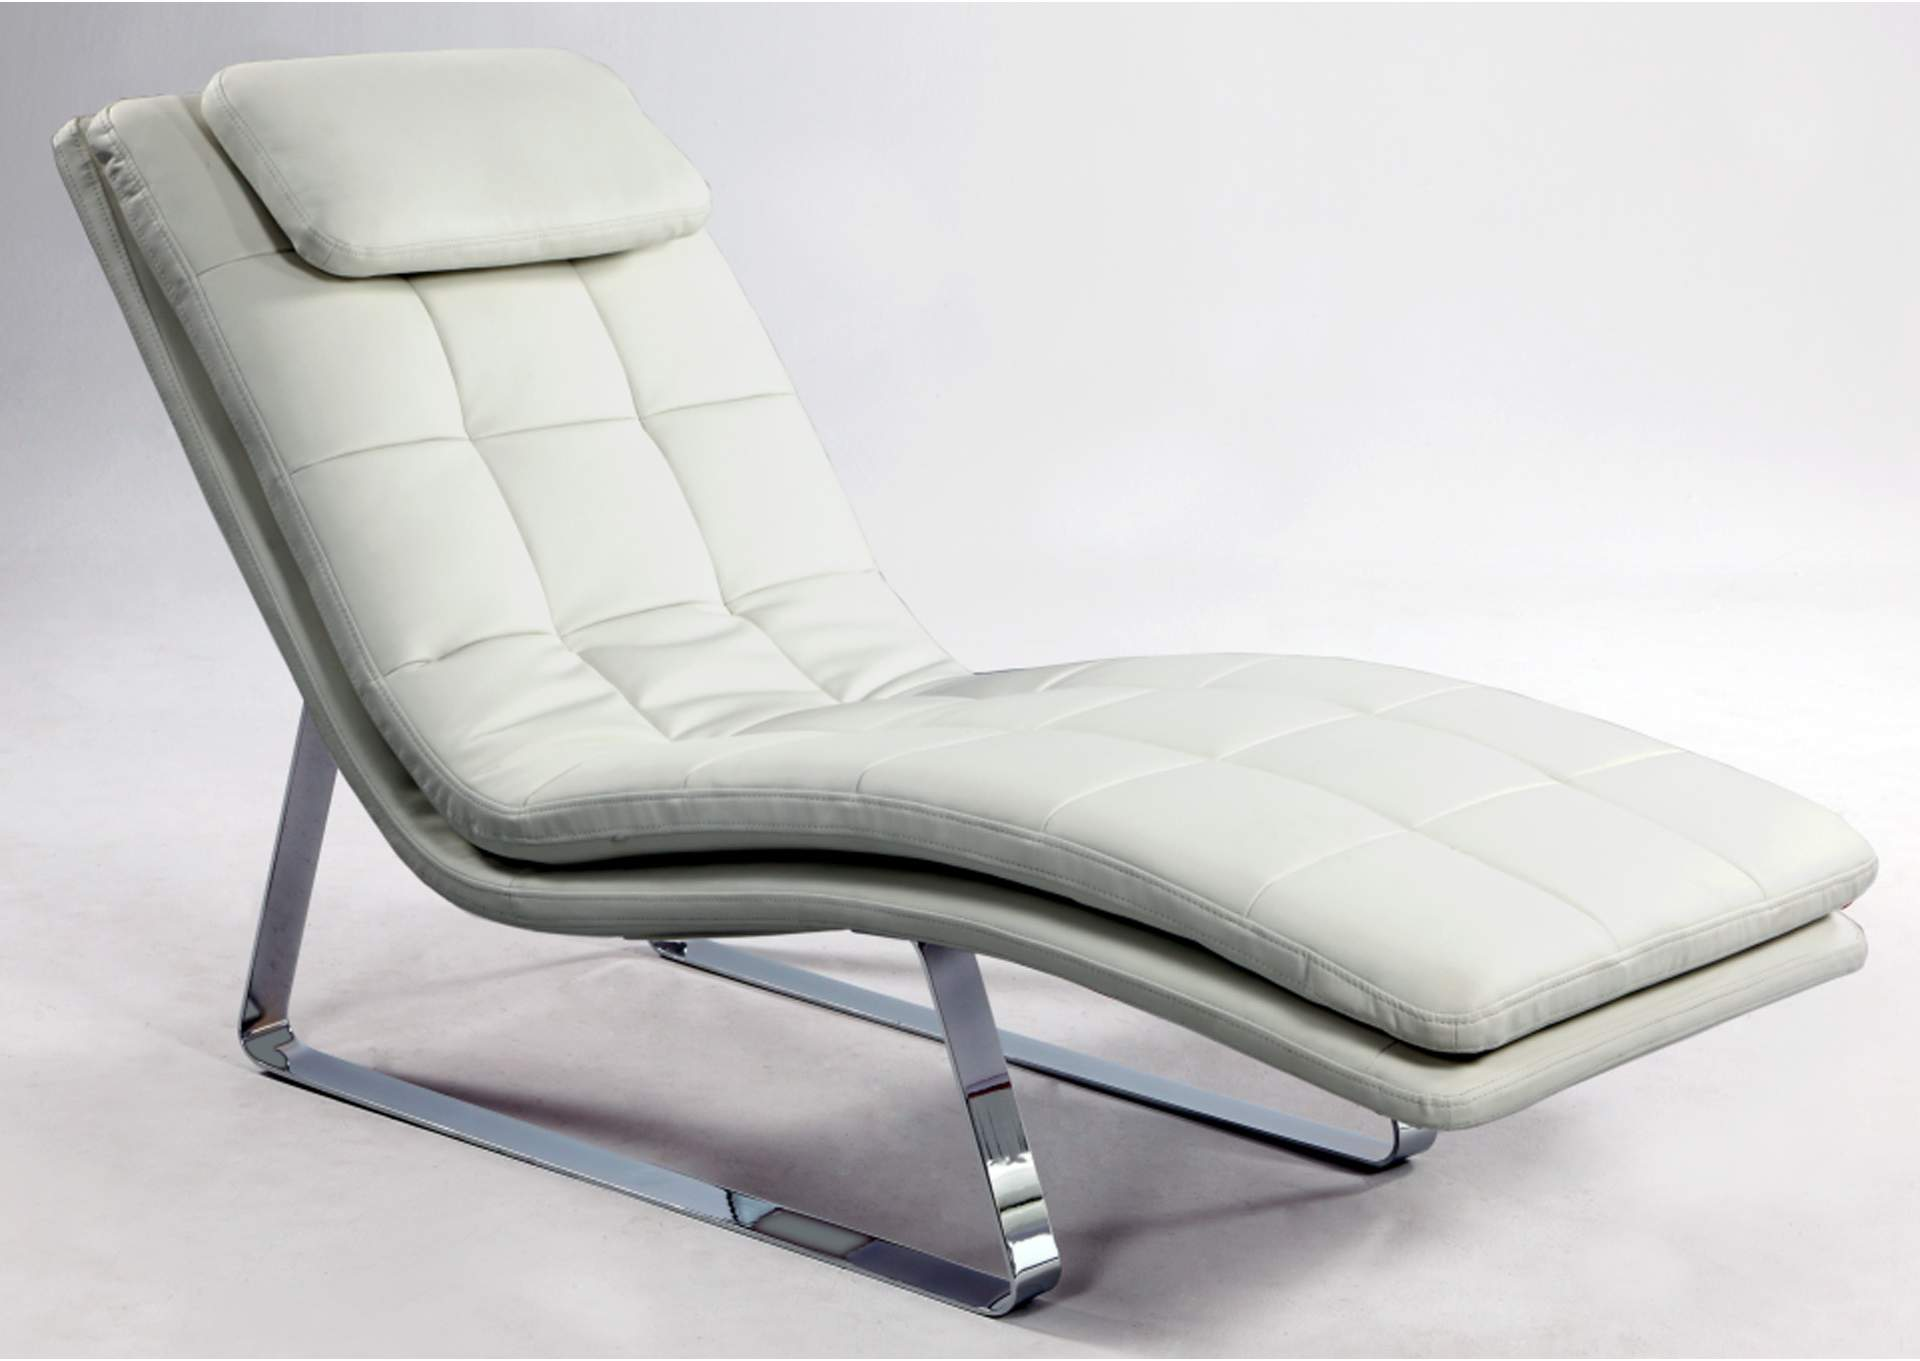 Corvette Contemporary  Lounge Chair  w/ Chrome Legs,Chintaly Imports